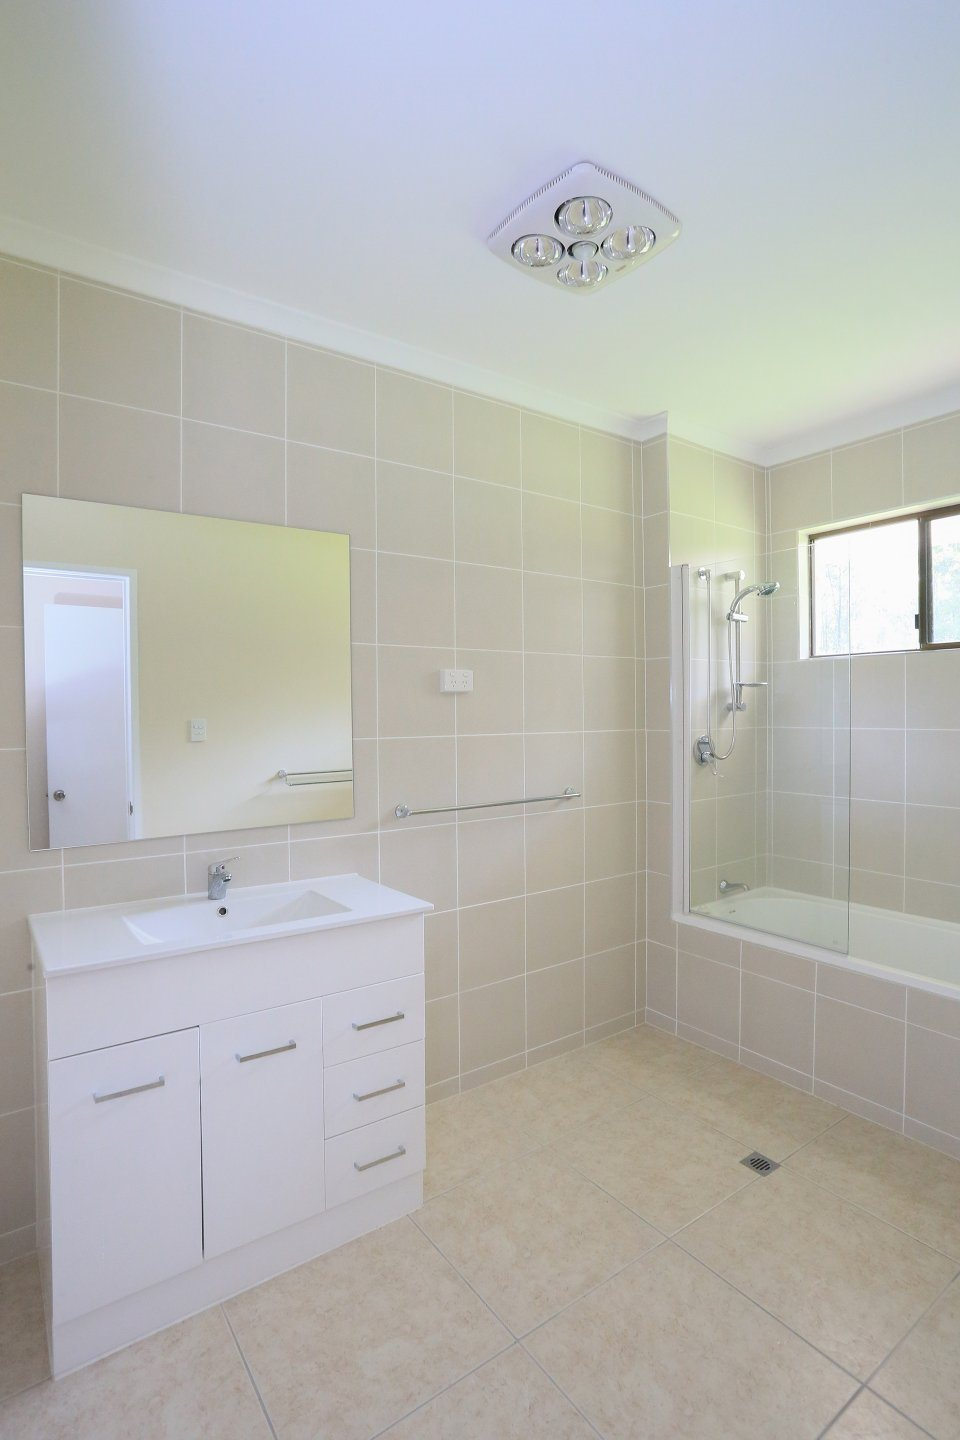 New bathroom with tiles to ceiling